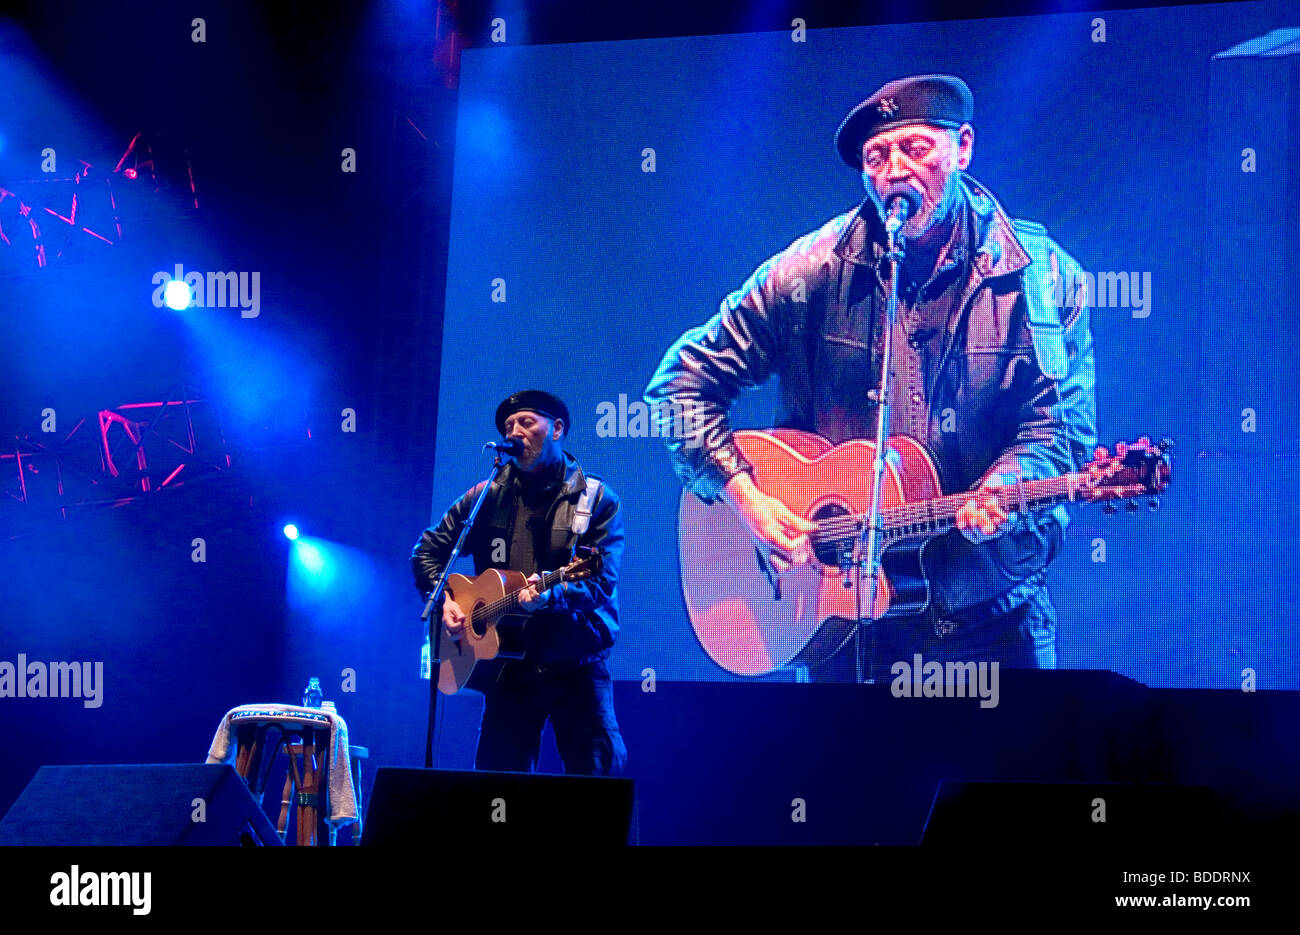 Richard Thompson playing at the Fairport's Cropredy Convention music festival 2009 Fairport's Cropredy Convention - Stock Image